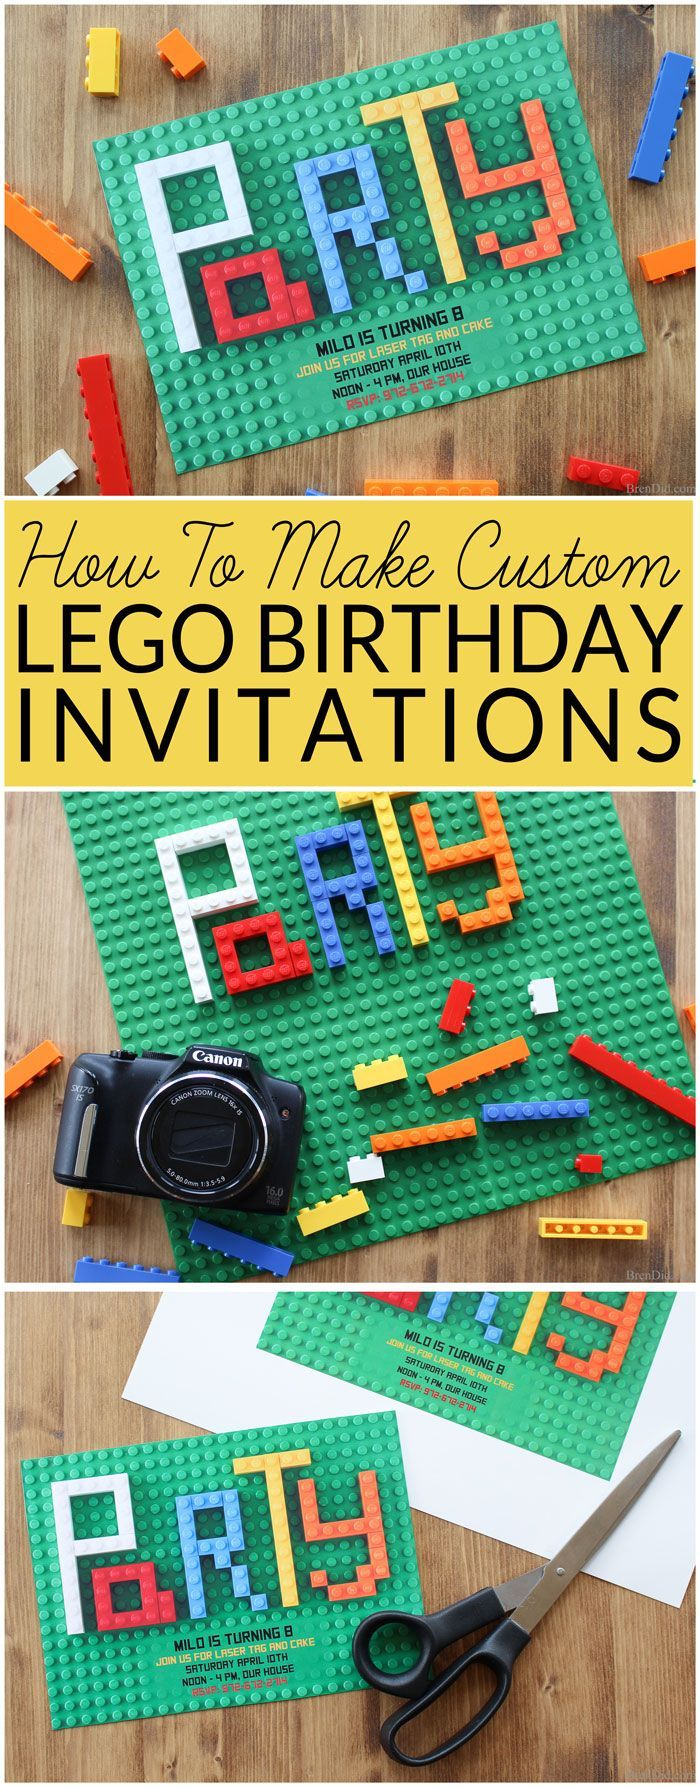 190 best Lego party images on Pinterest | Ninjago lego sets, Guy ...